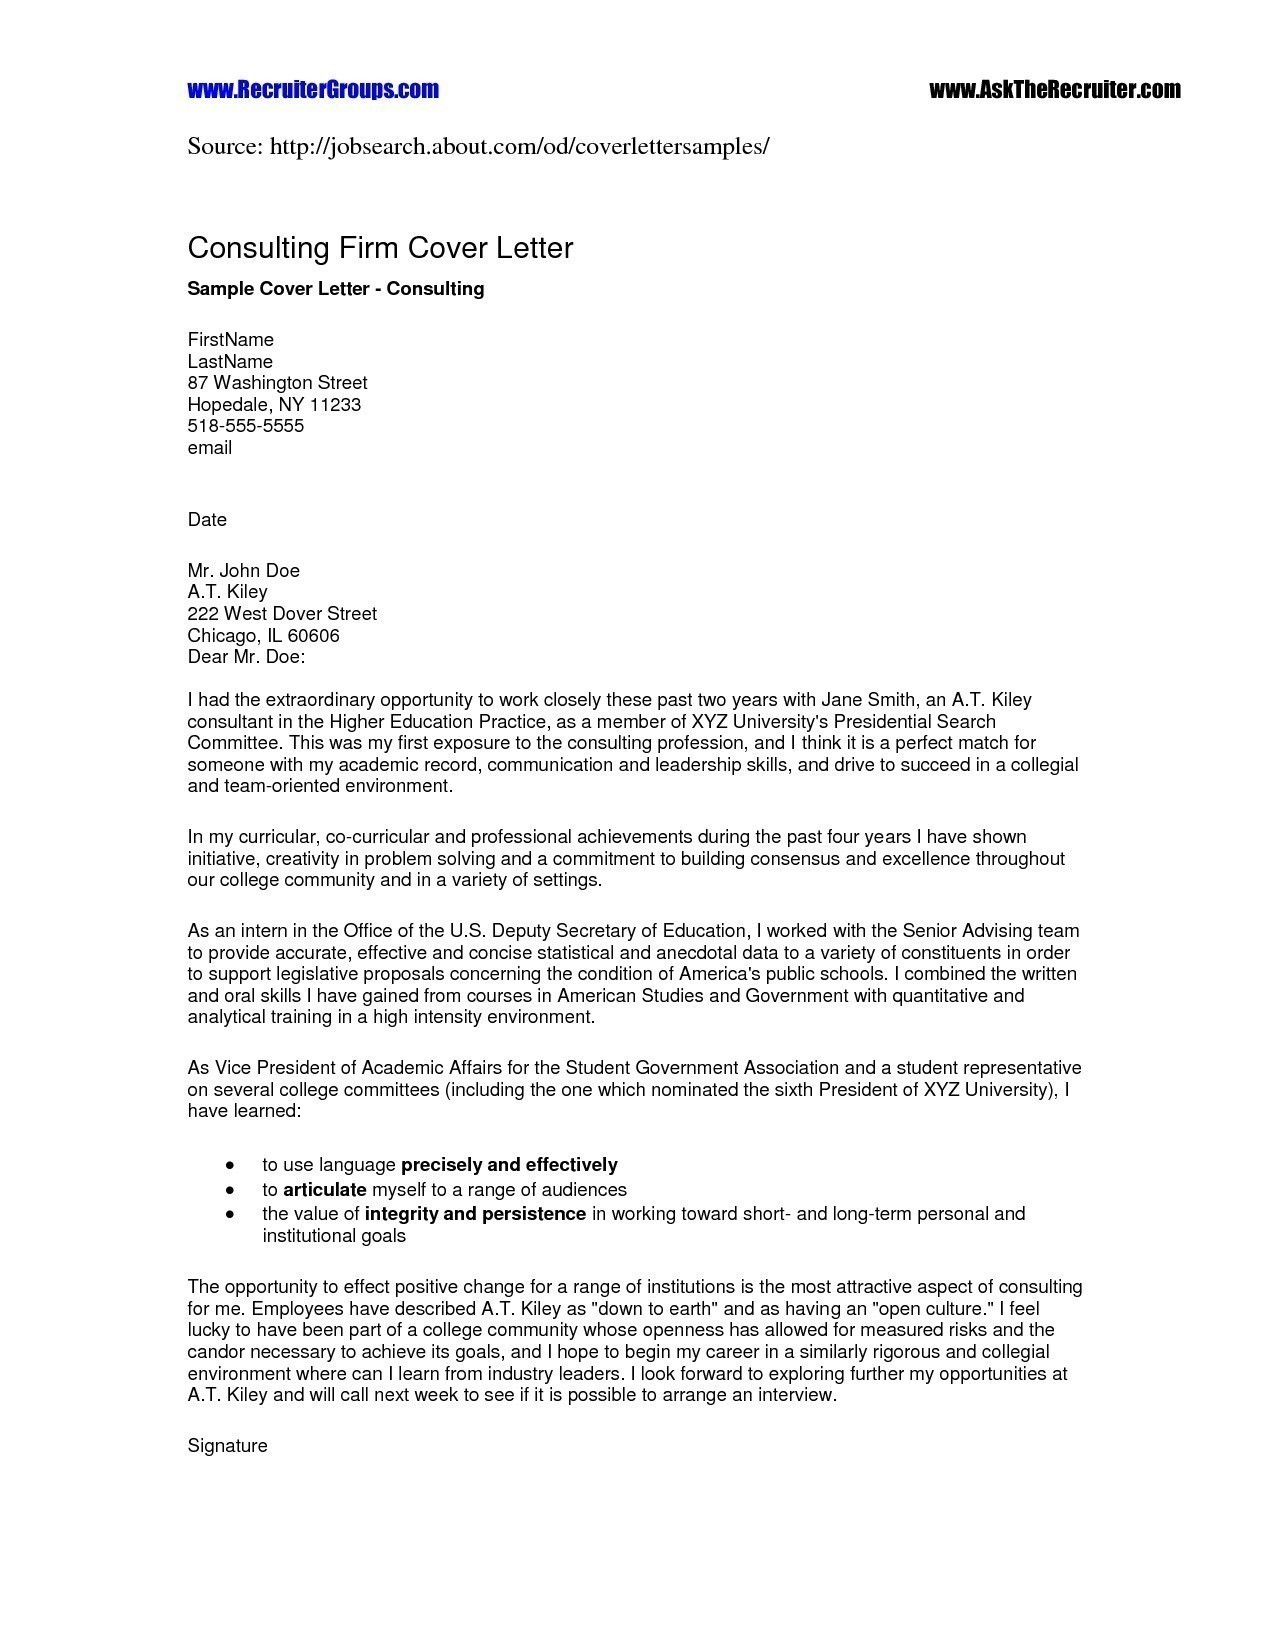 Home Offer Letter Template - How to Write Job Fer Letter Fresh Job Fer Letter Sample Best Job